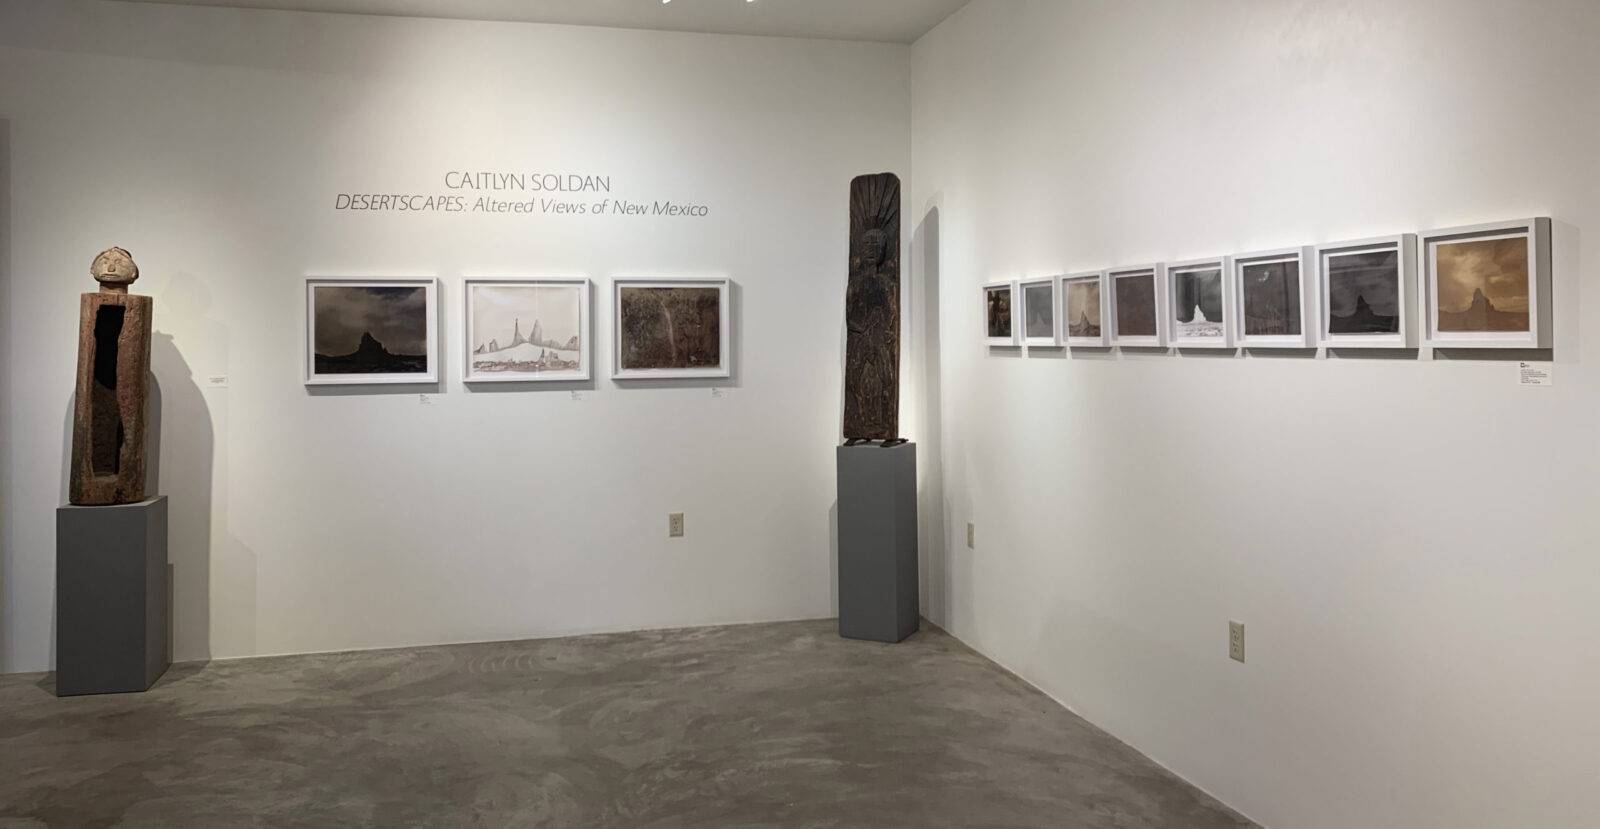 installation image of Caitlyn Soldan's desertscapes exhibition